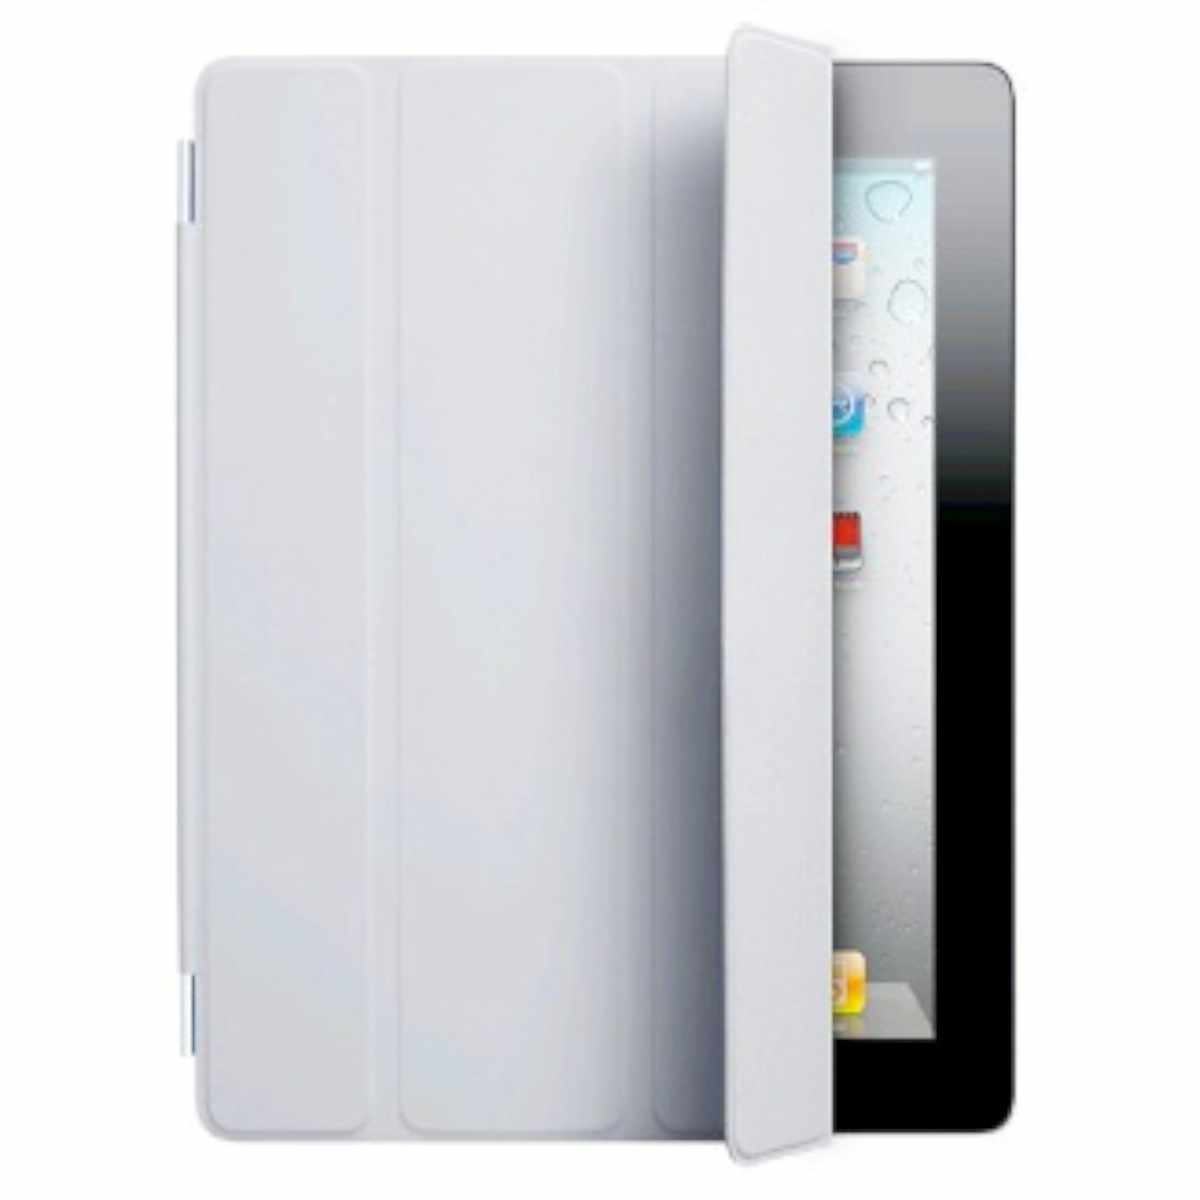 126160007Smart Cover iPad 2 - nieuwe iPad wit